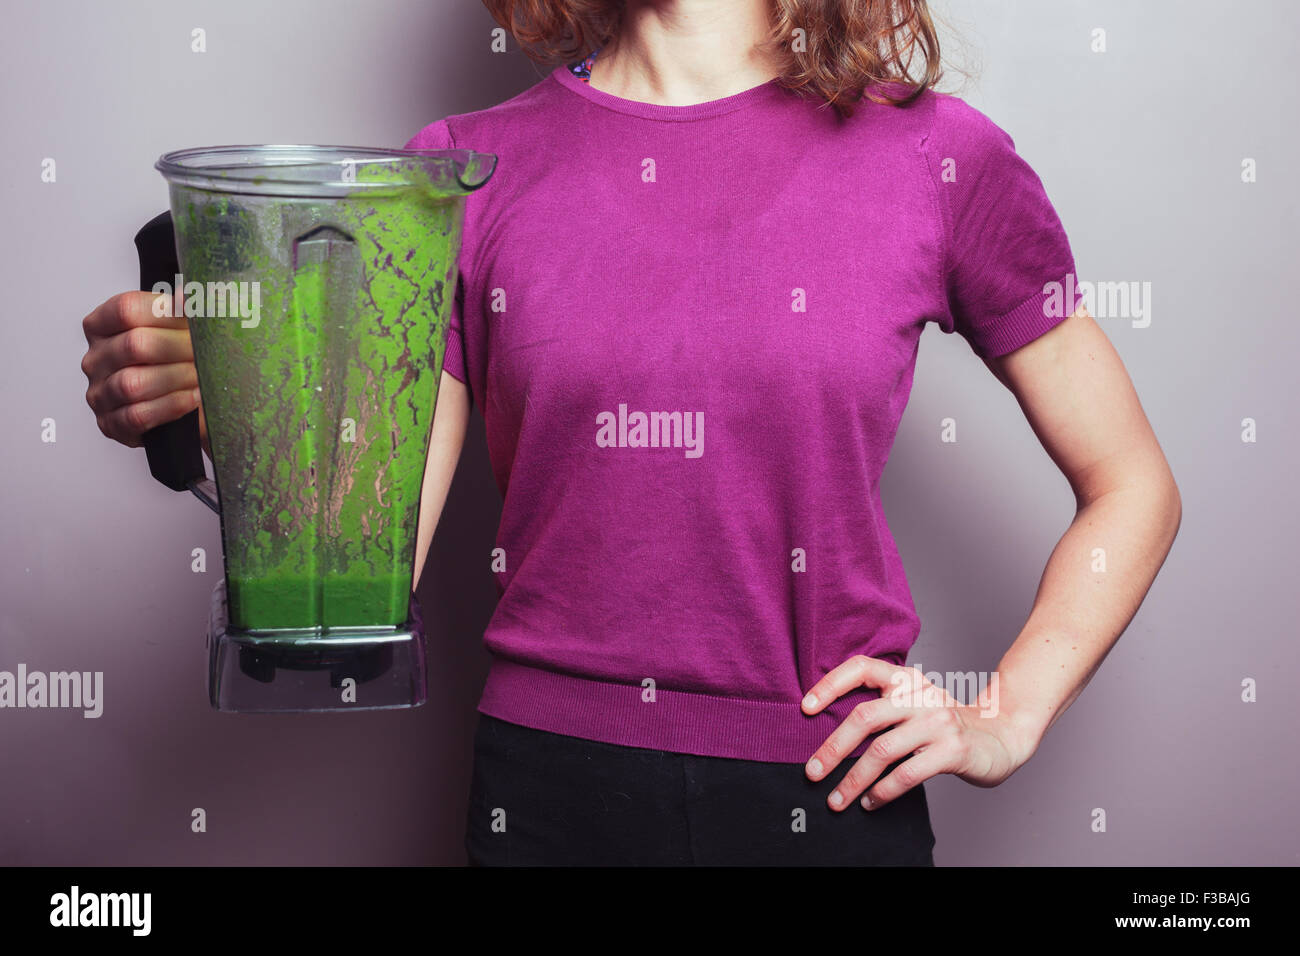 A young woman in a purple top is holding a blender with a green fruit smoothie - Stock Image